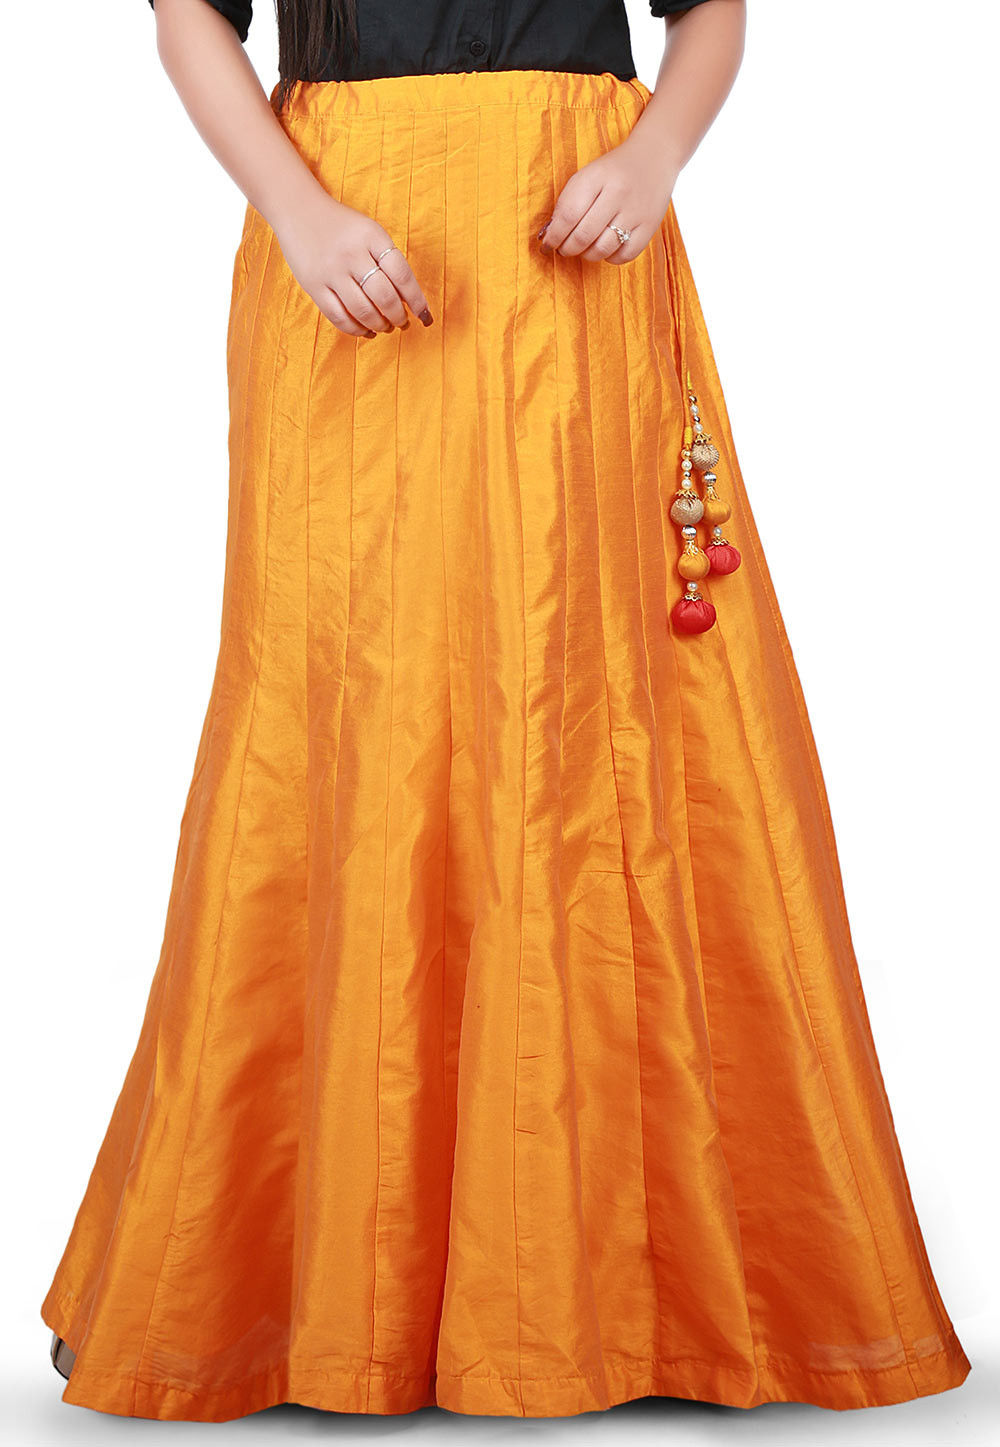 Plain Dupion Silk Long Skirt in Mustard